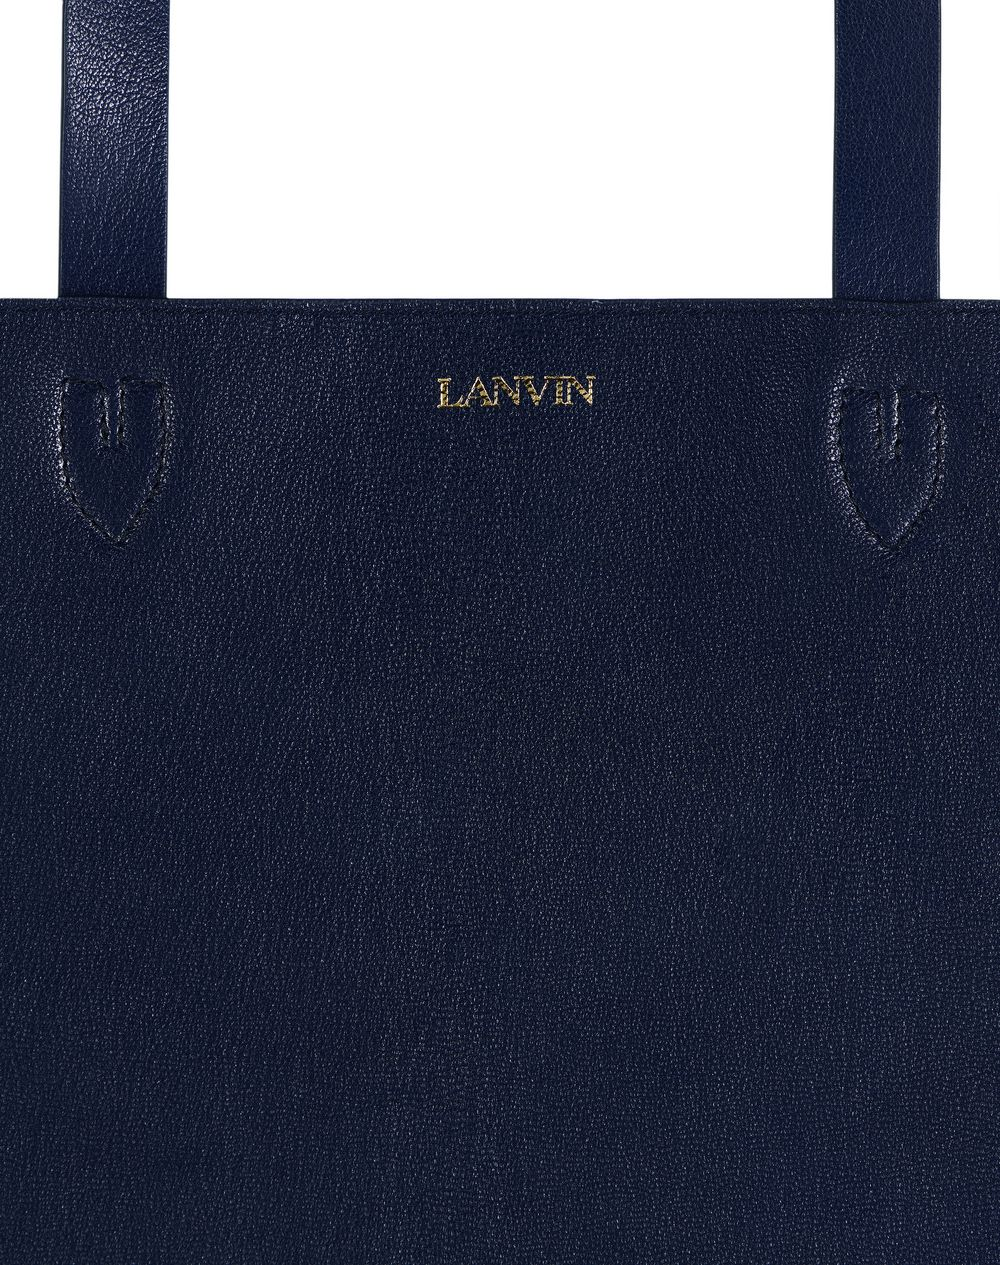 LEATHER TOTE BAG WITH SCRIPT PRINT - Lanvin